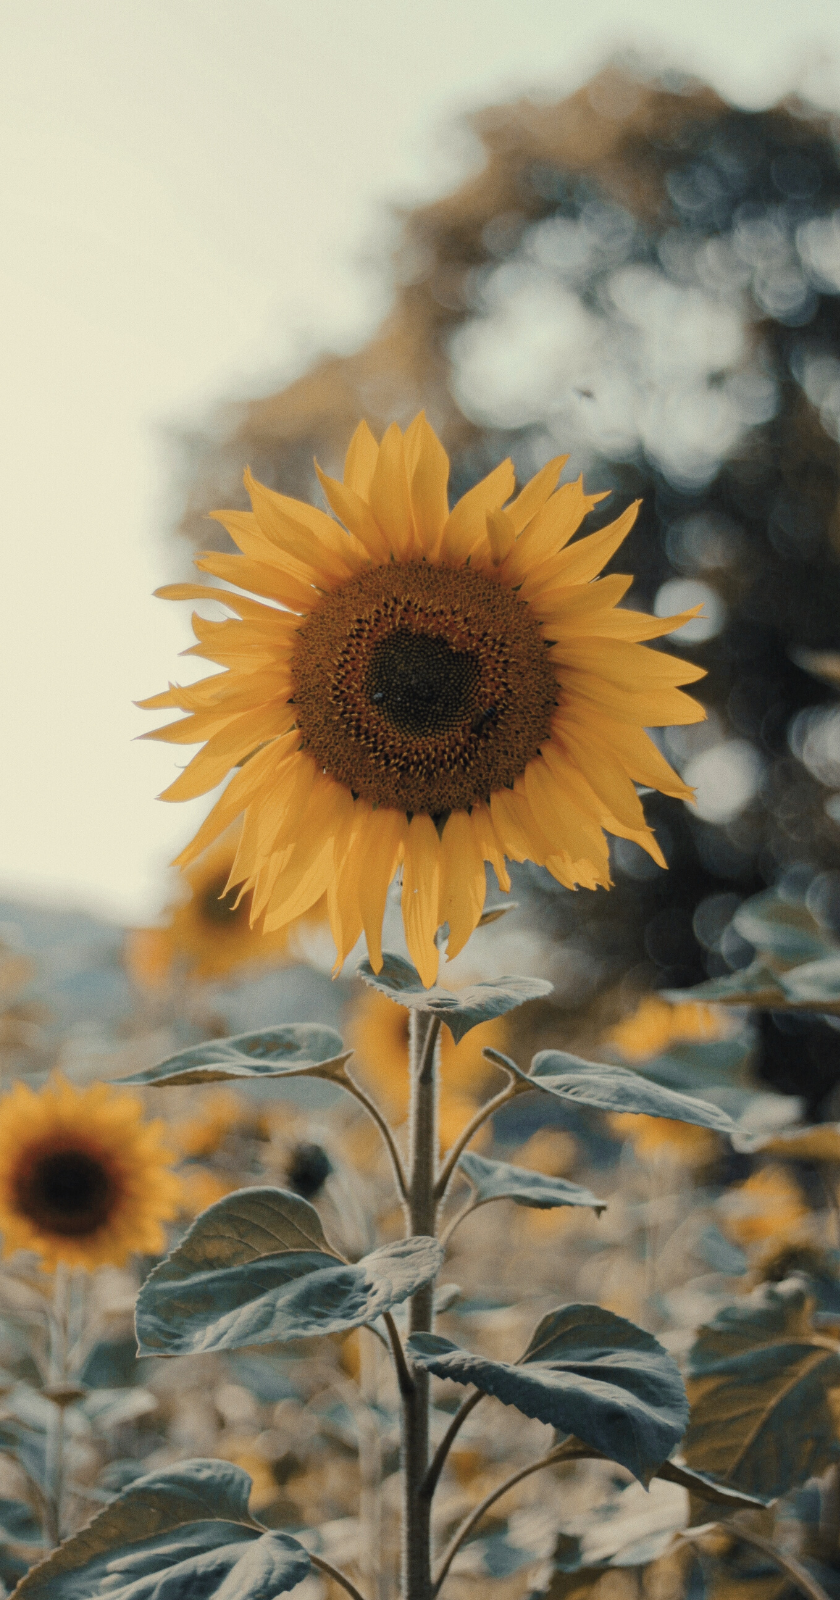 Wallpapers For Iphone In 2020 Sunflower Wallpaper Iphone